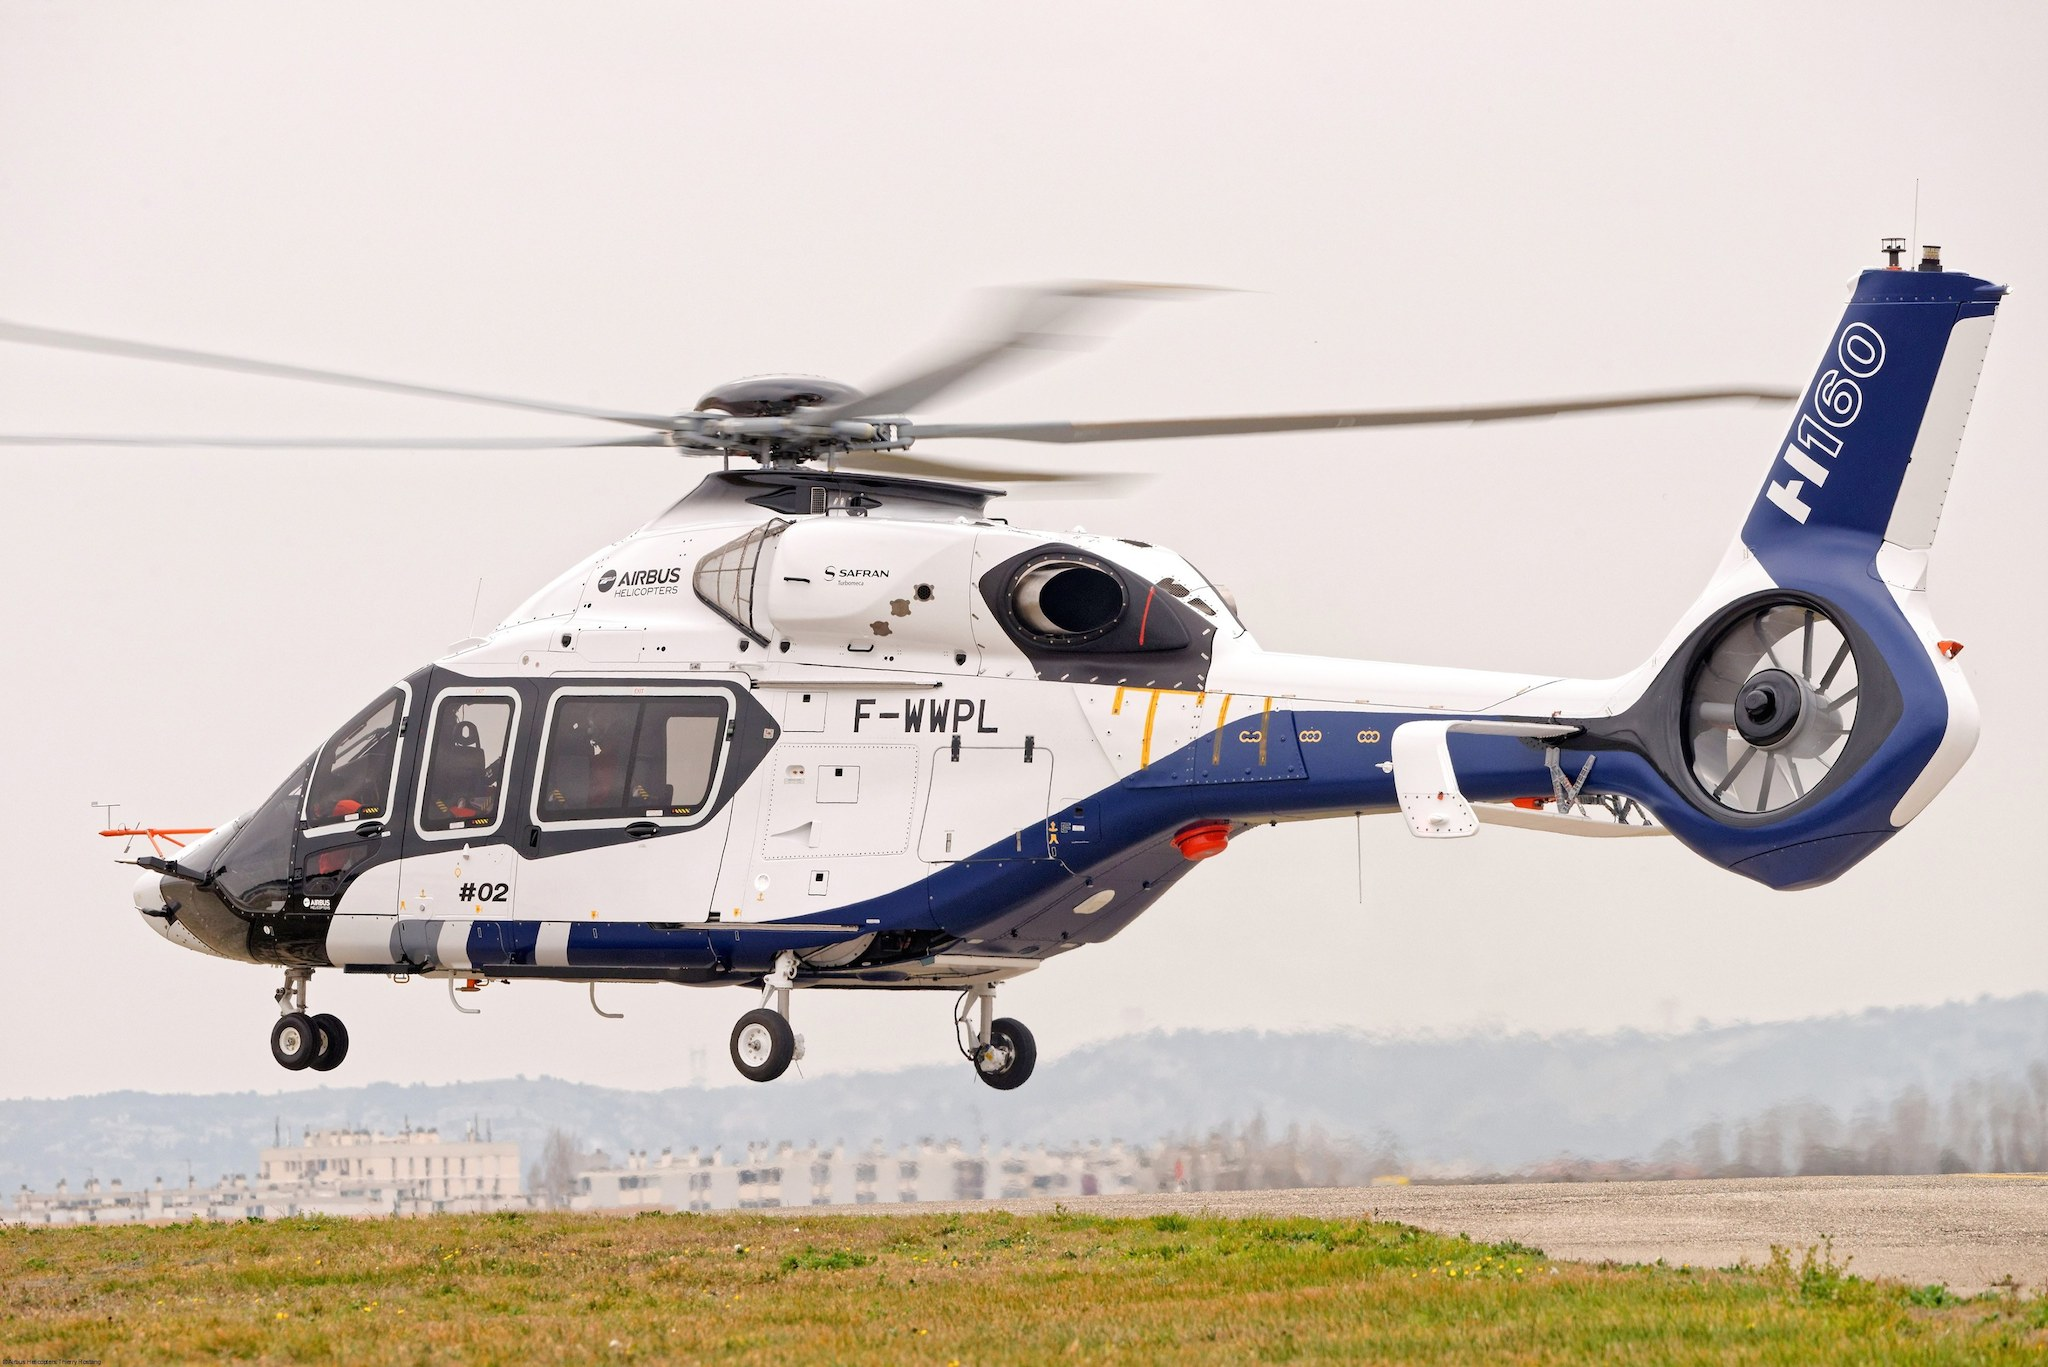 H160 ©Airbus Helicopters